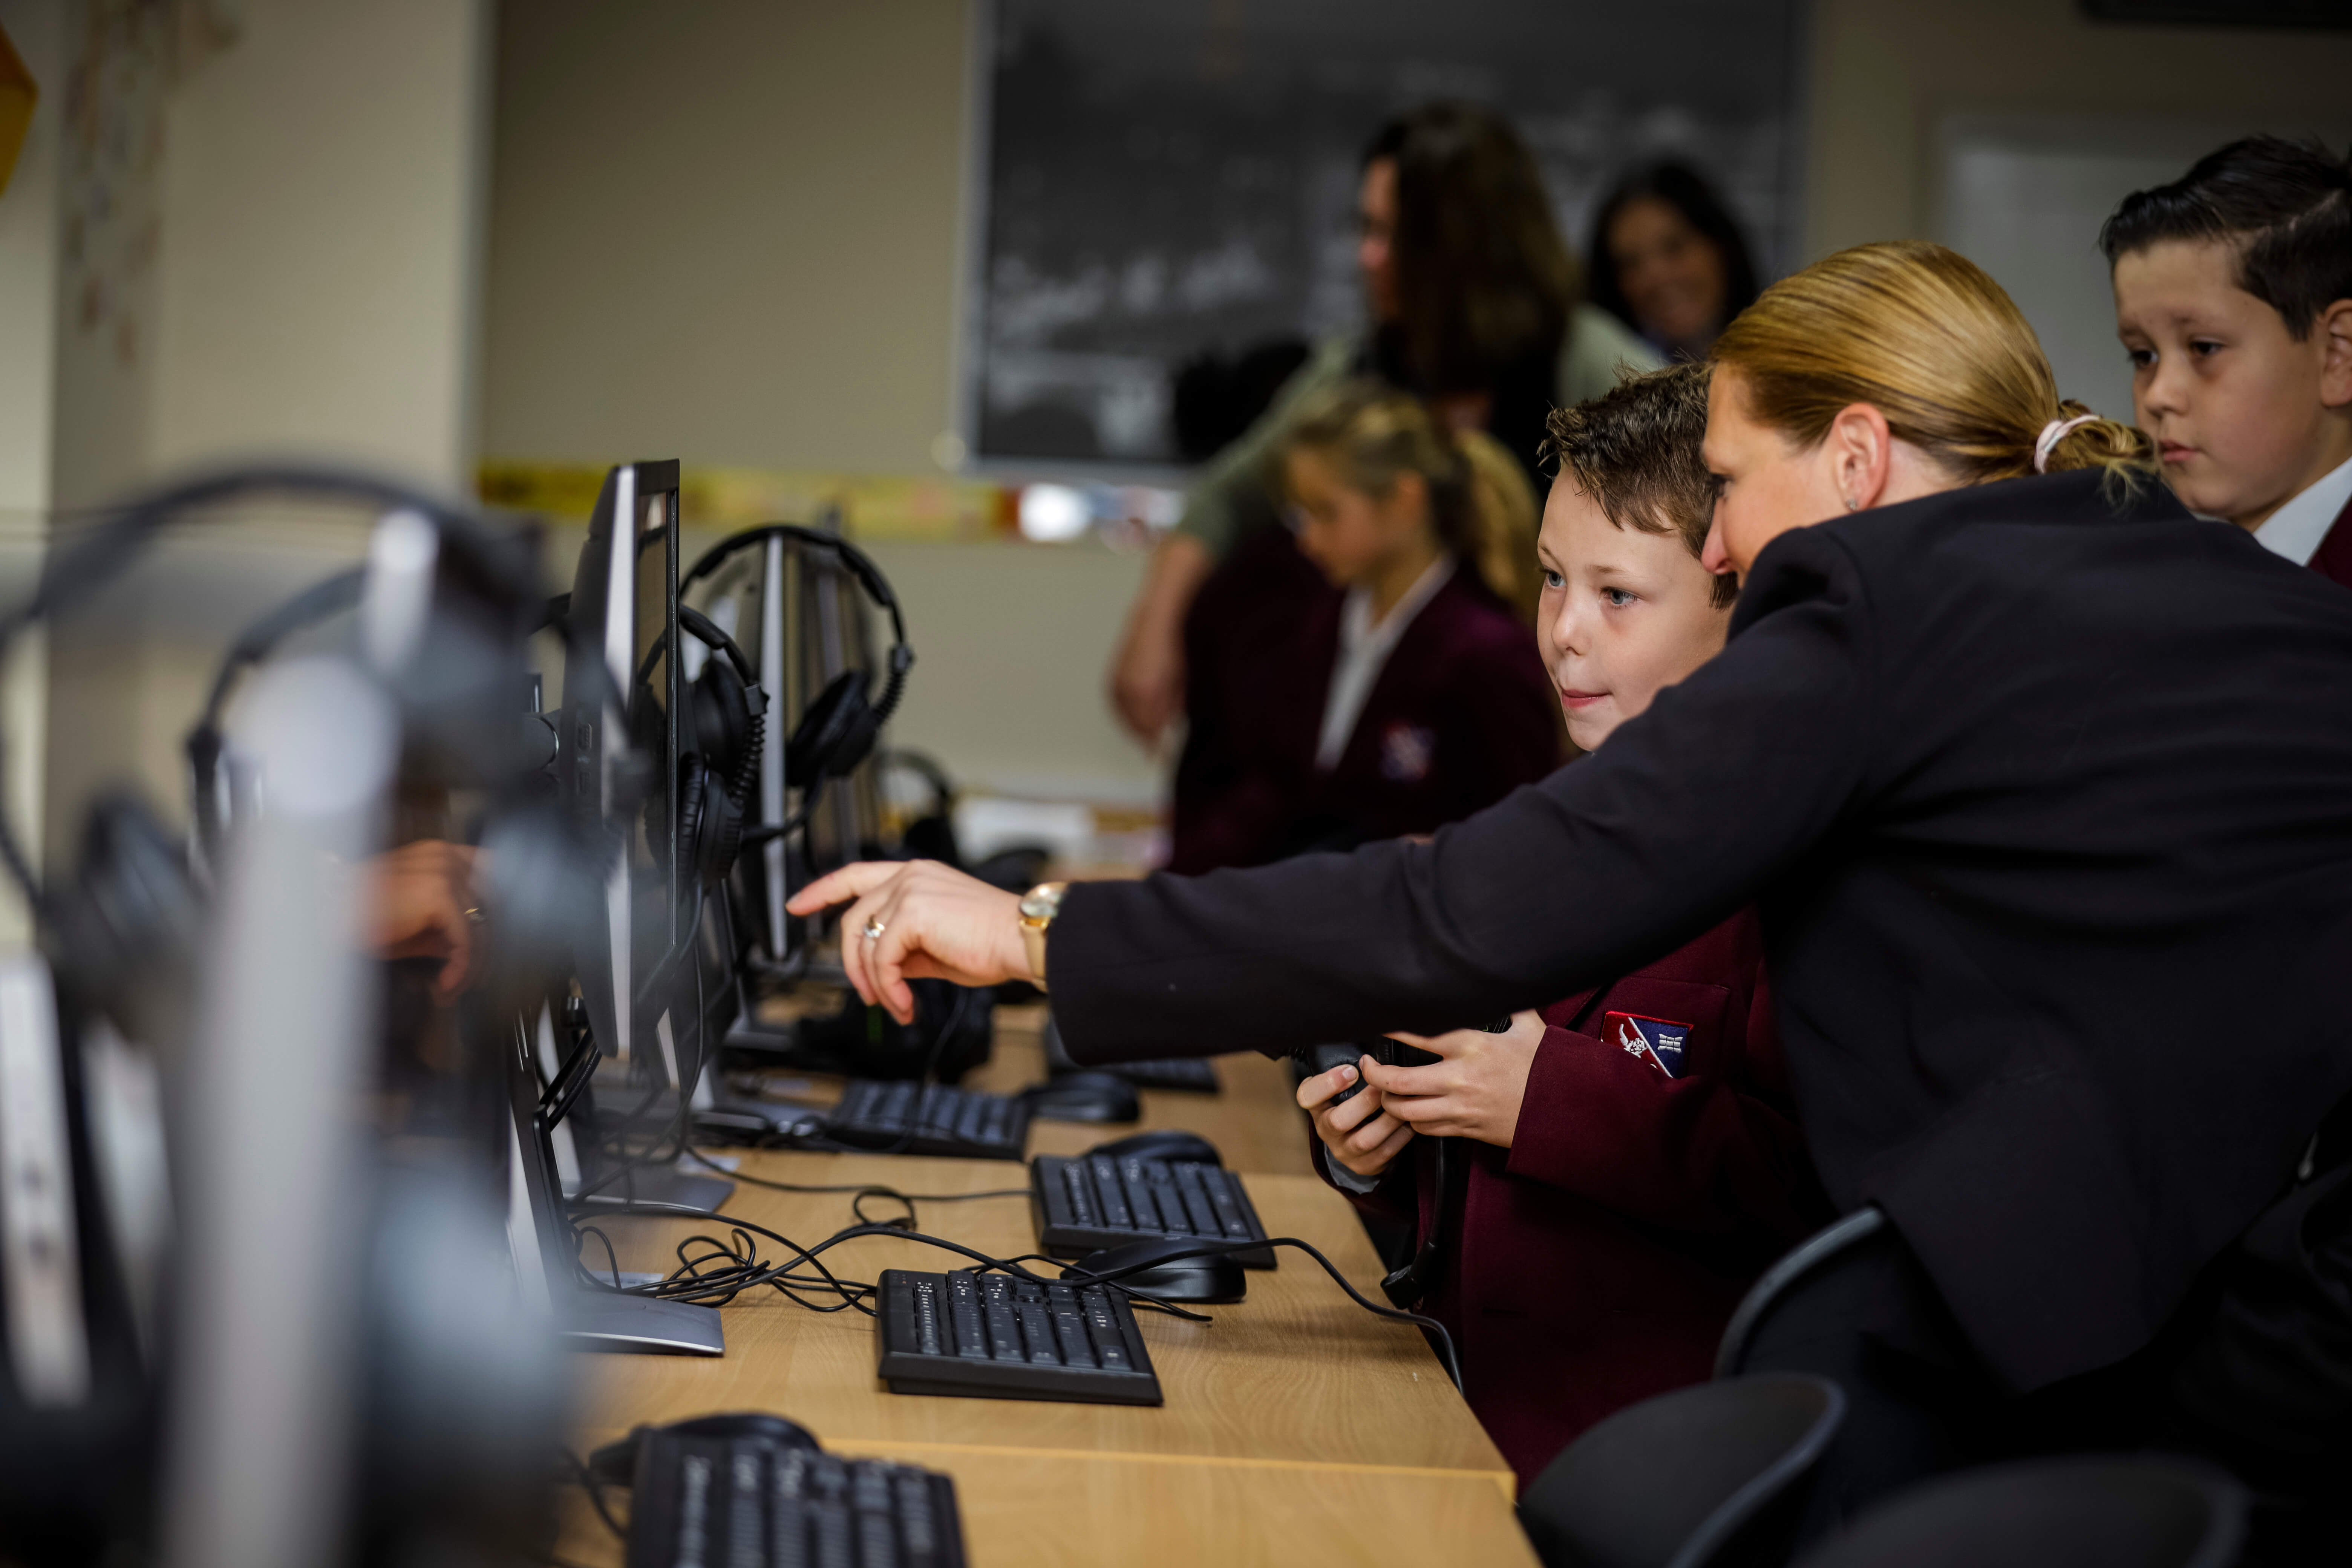 Four UK boarding schools, four passages to personal growth